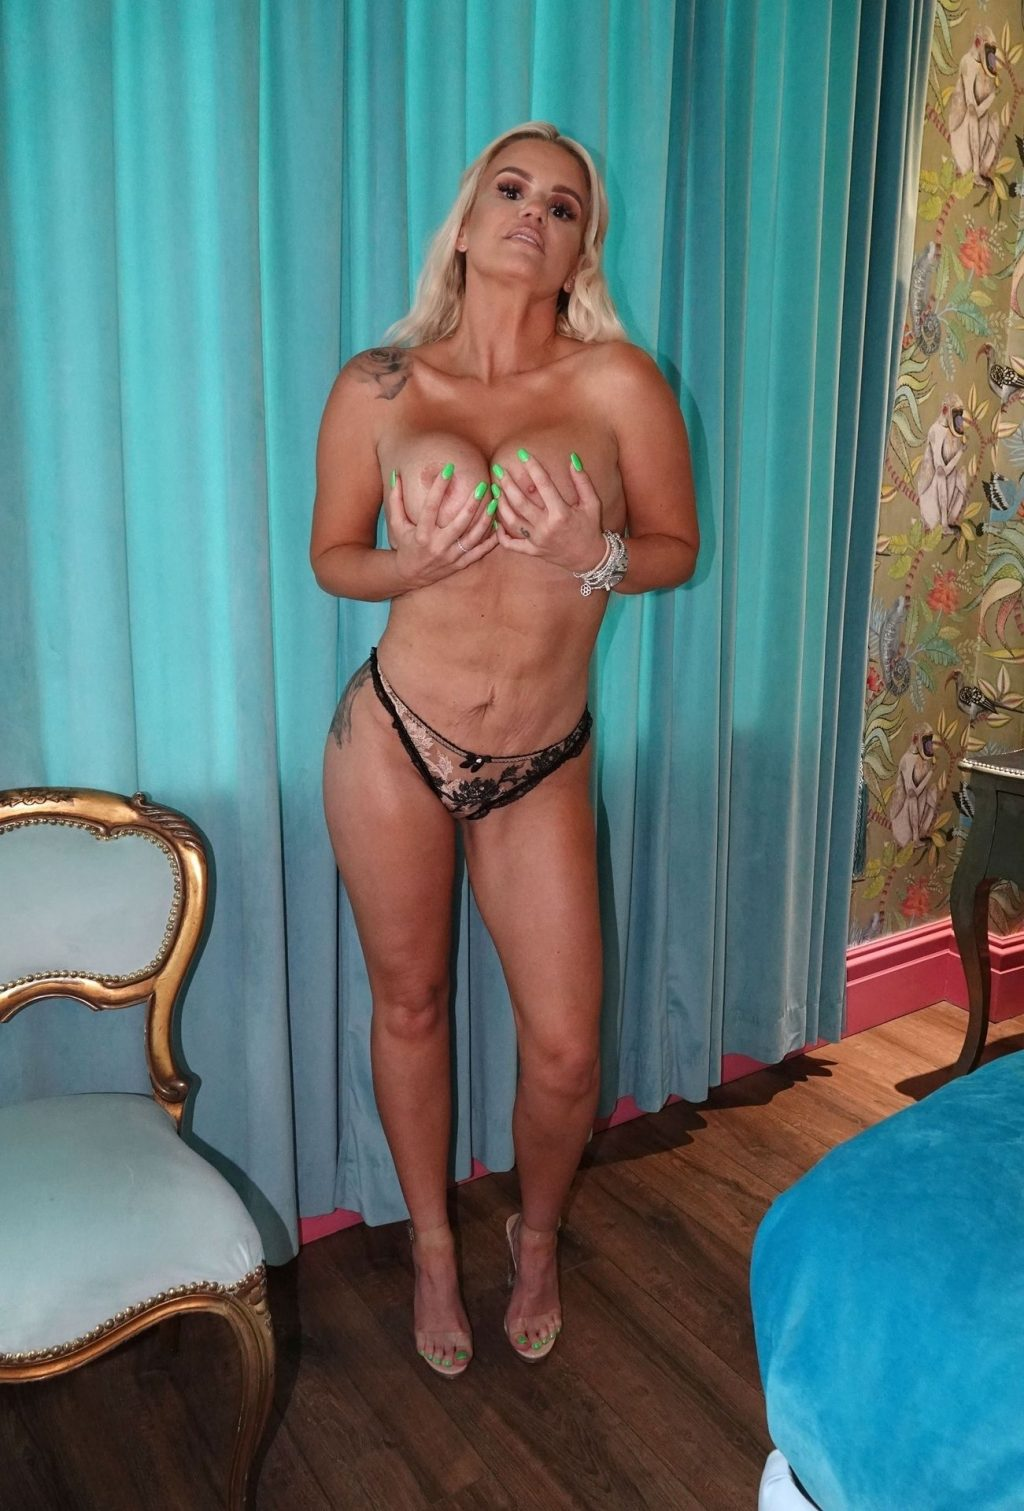 Kerry Katona Shows Off Her Nude Boobs For Her Fans (22 Photos)